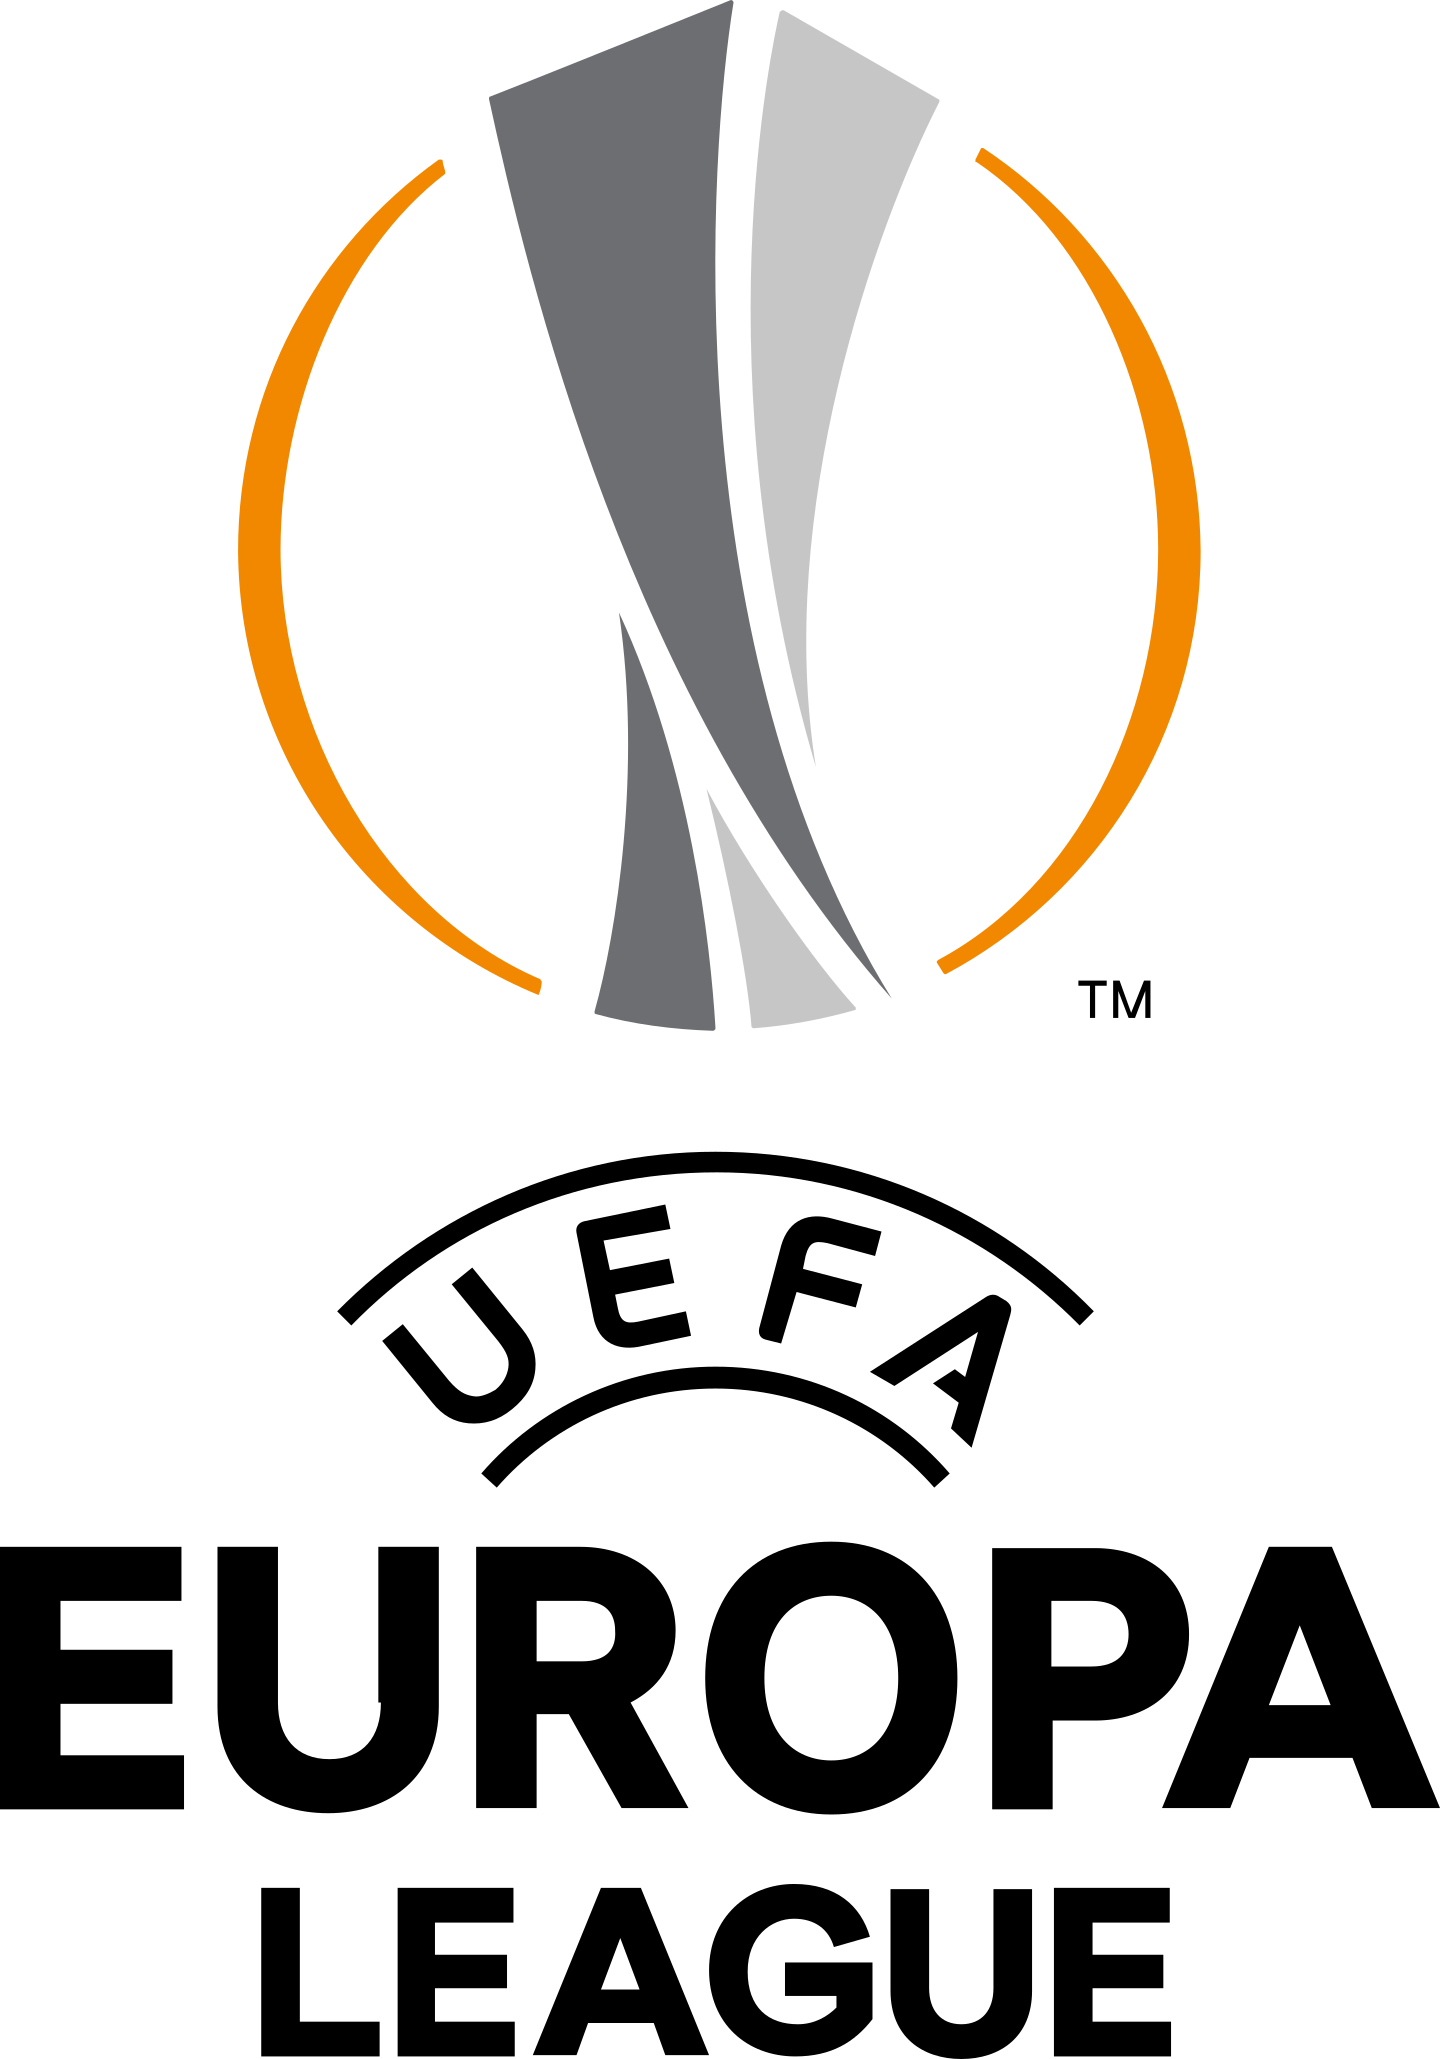 europa league logo 2 - UEFA Europa League Logo